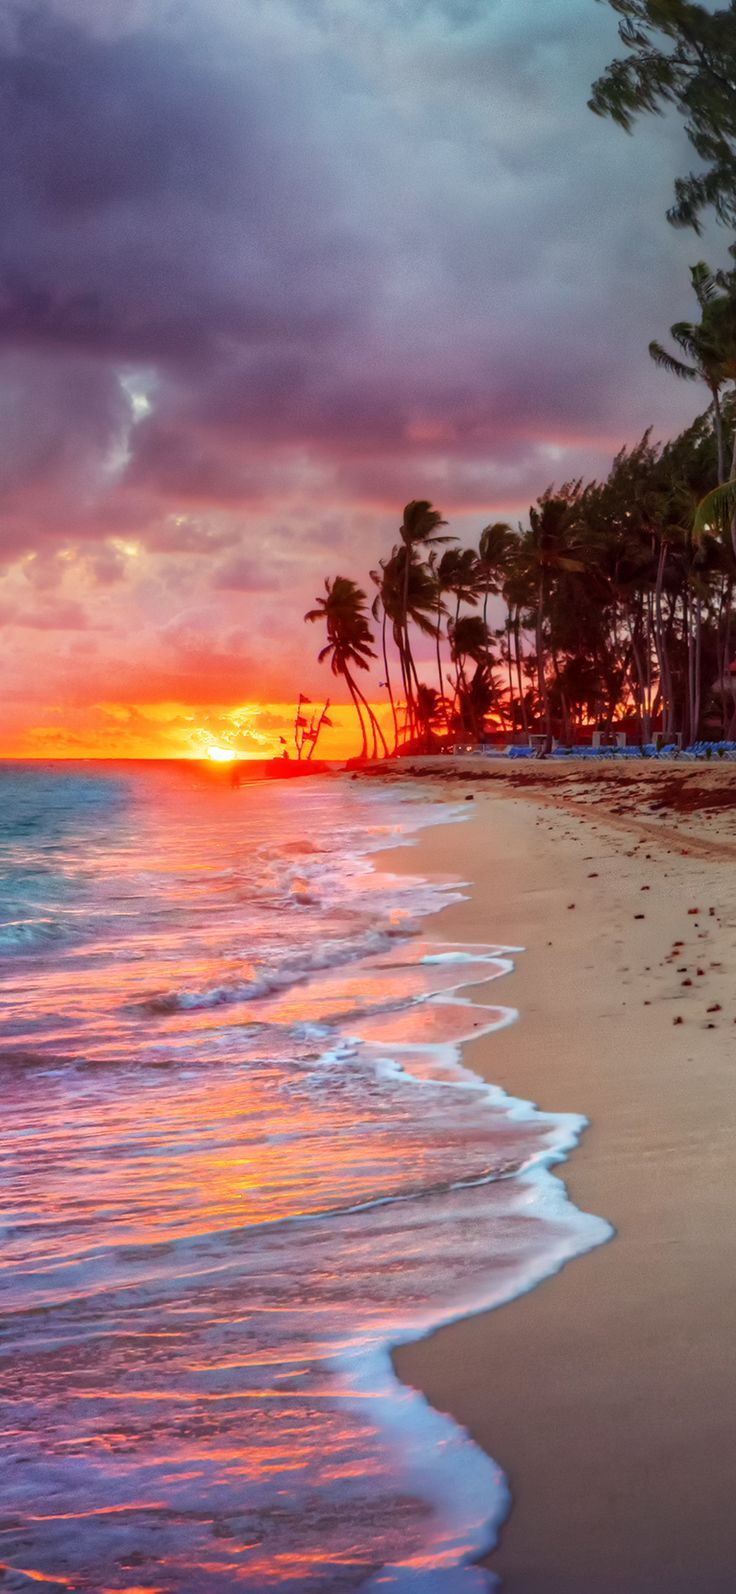 Now there's a sunset you don't want to miss!  Someone whisk us away to Puerto Rico!!!